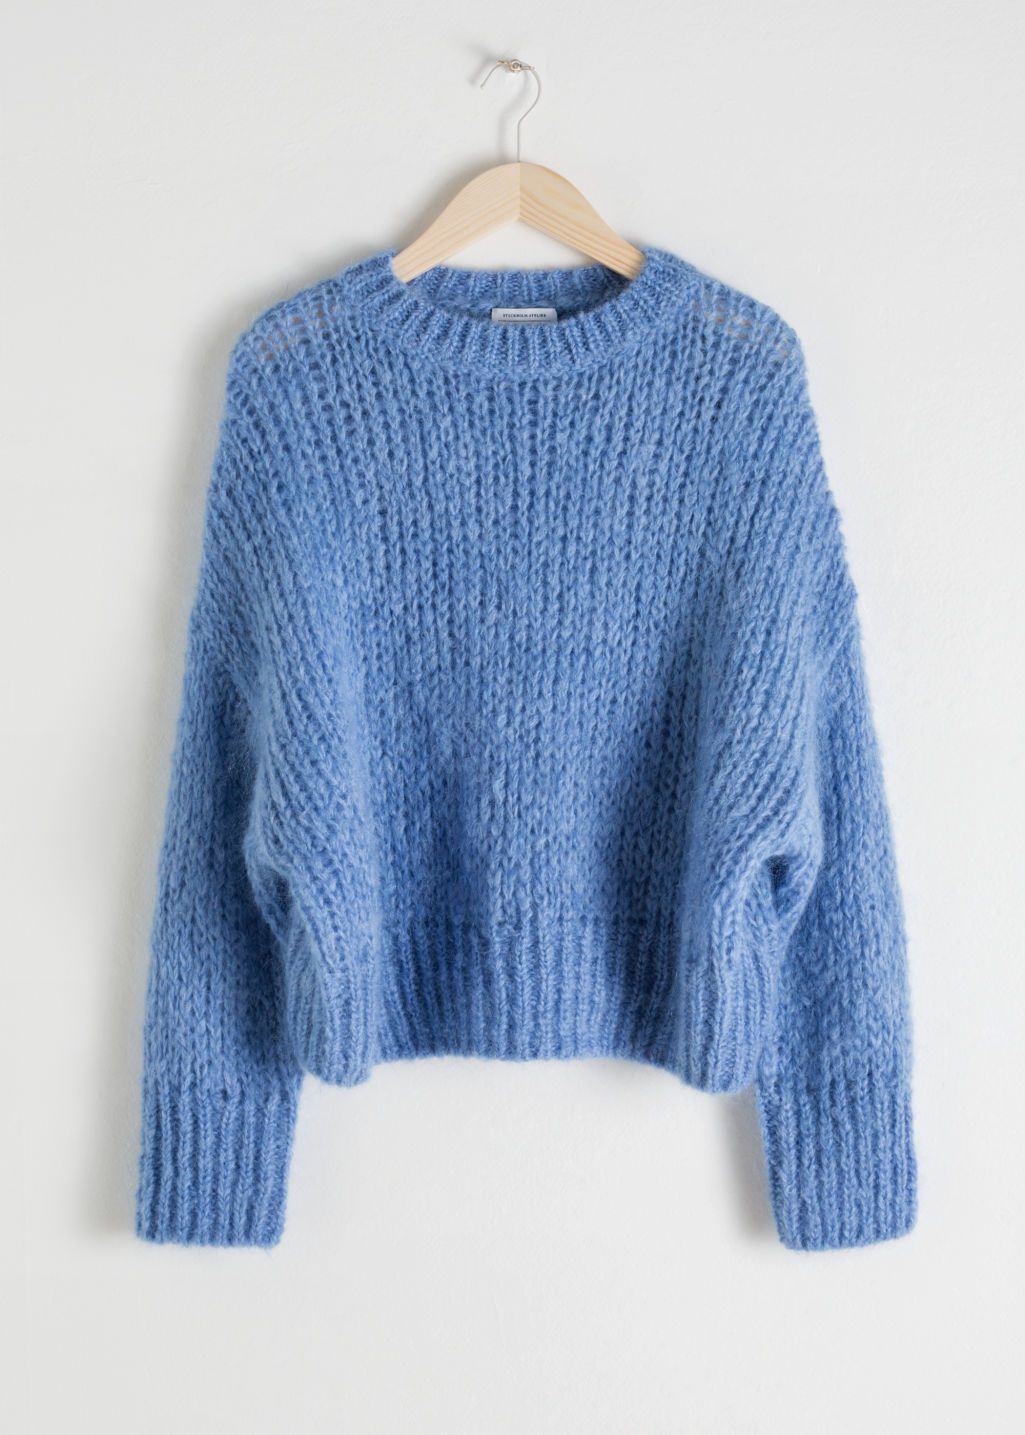 5a1fc9d003c8 Colour Block Mock Neck Sweater - Multicoloured - Patterned sweaters -  amp   Other Stories Blue